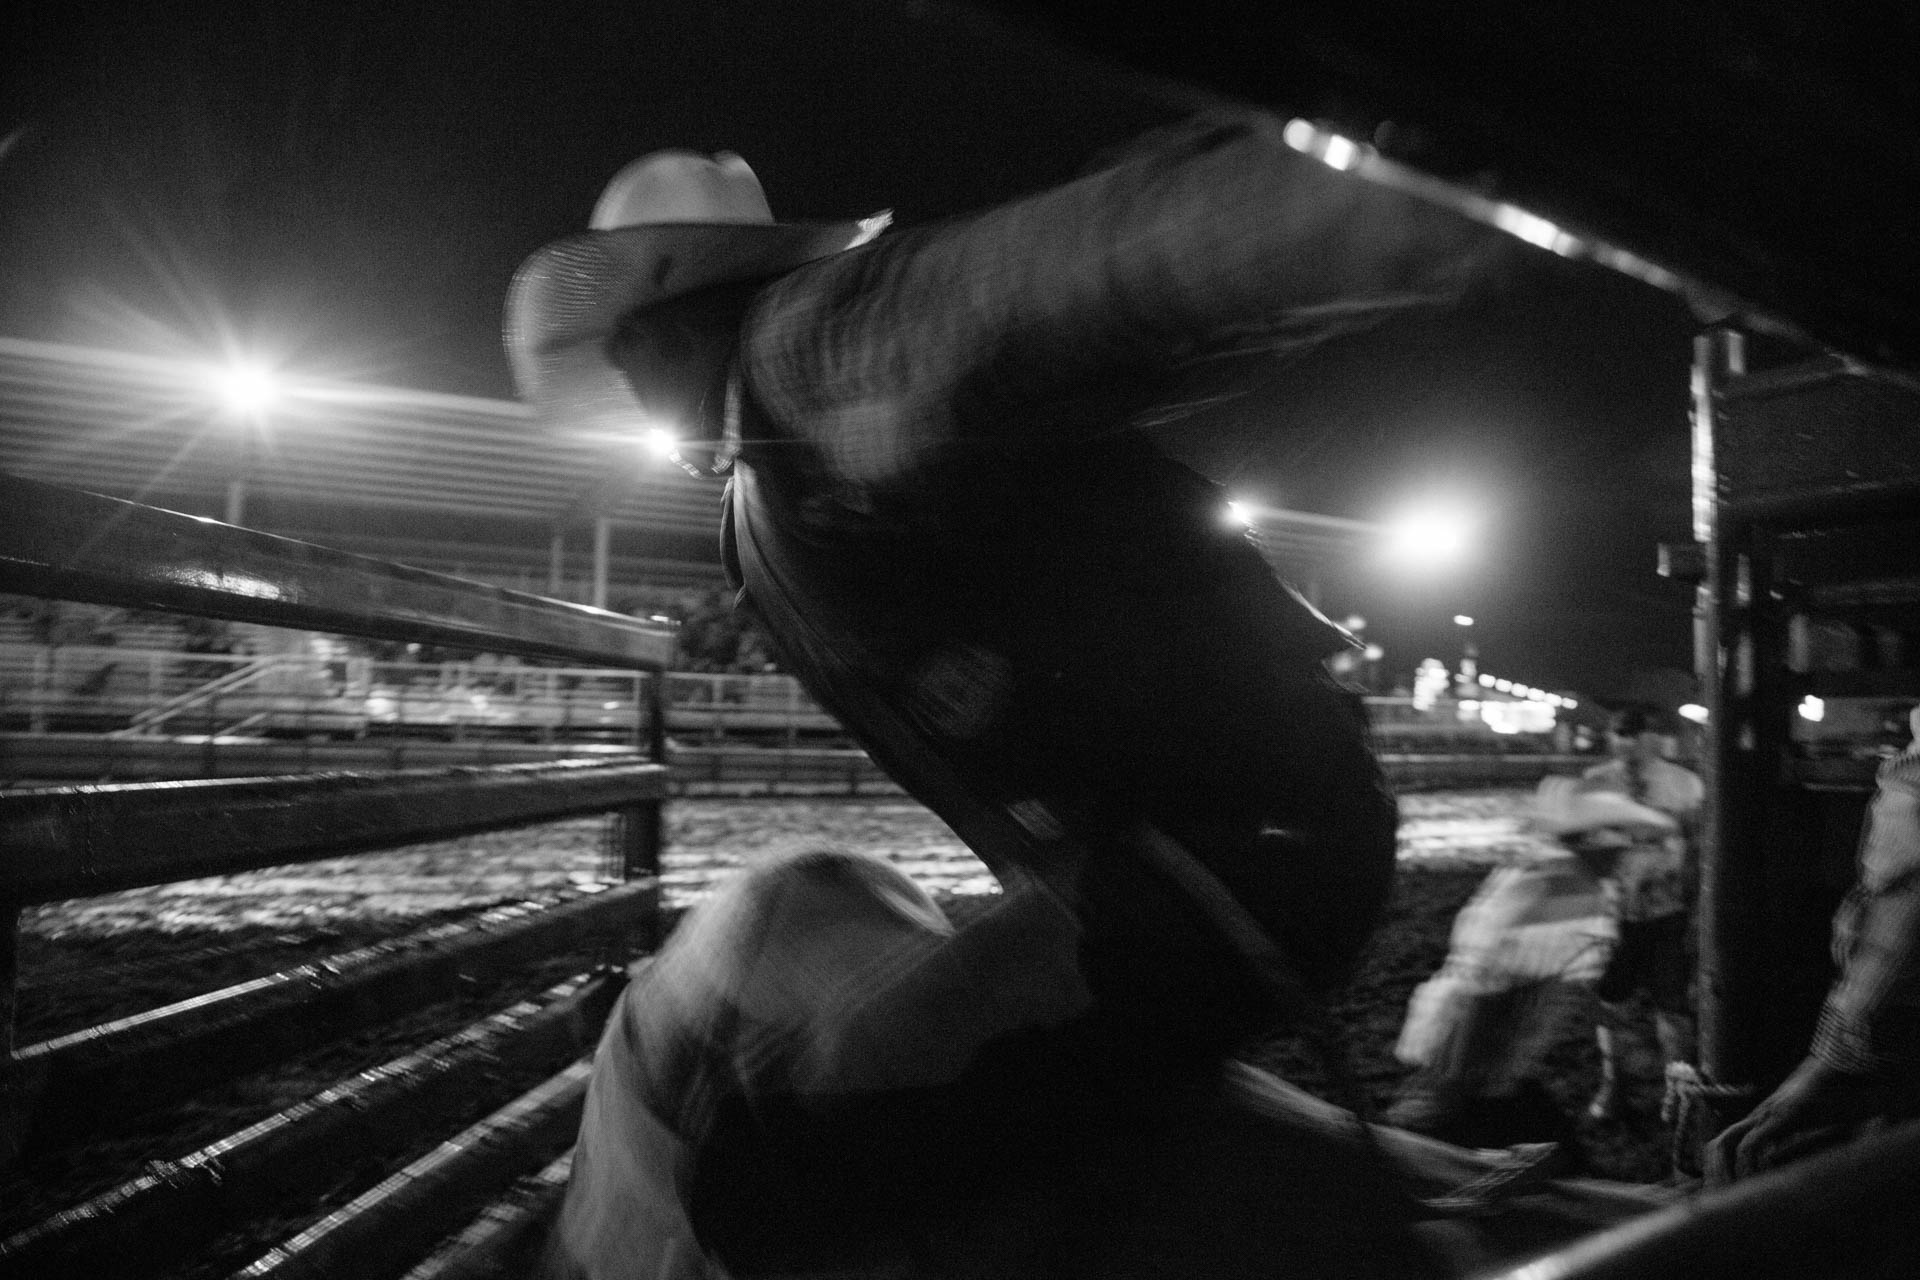 bull-rider-flies-out-of-chute-blur-a5377